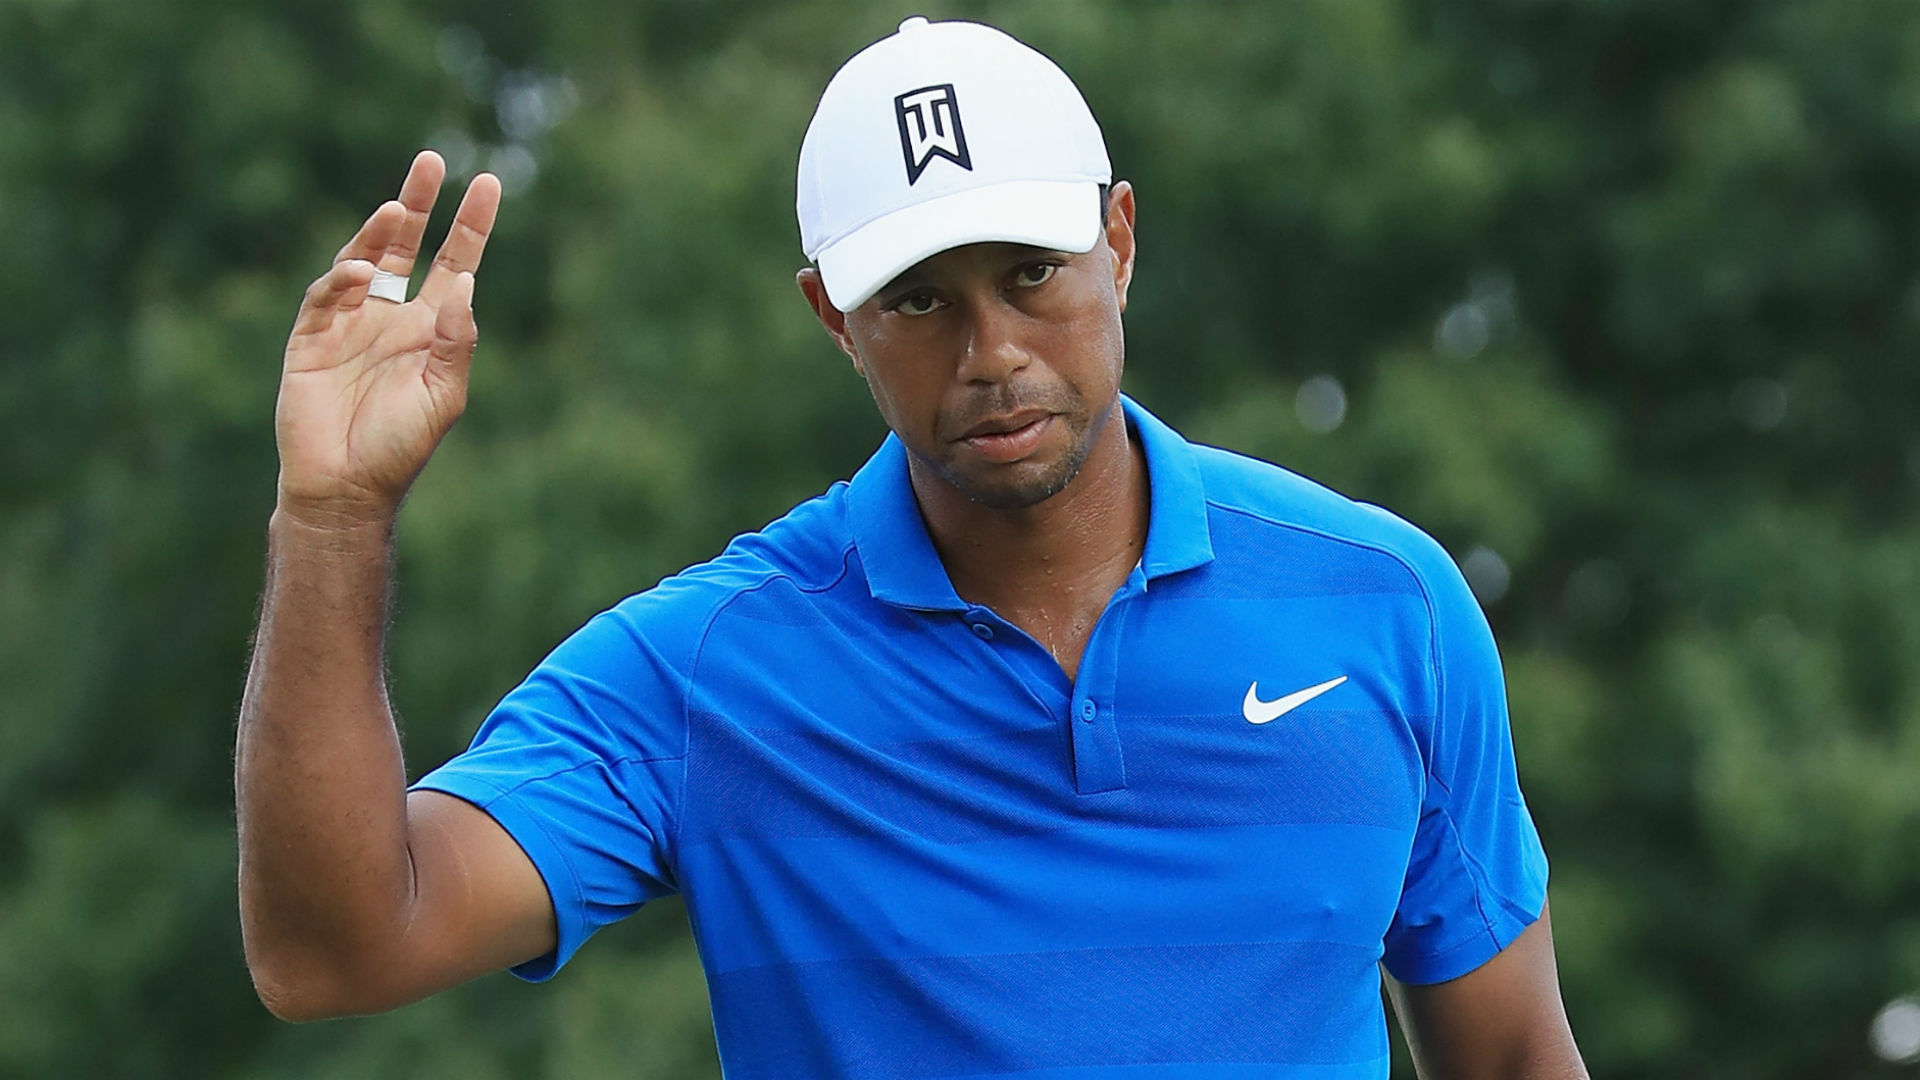 Tiger Woods Wins First Golf Tournament Since 4 Back Surgeries